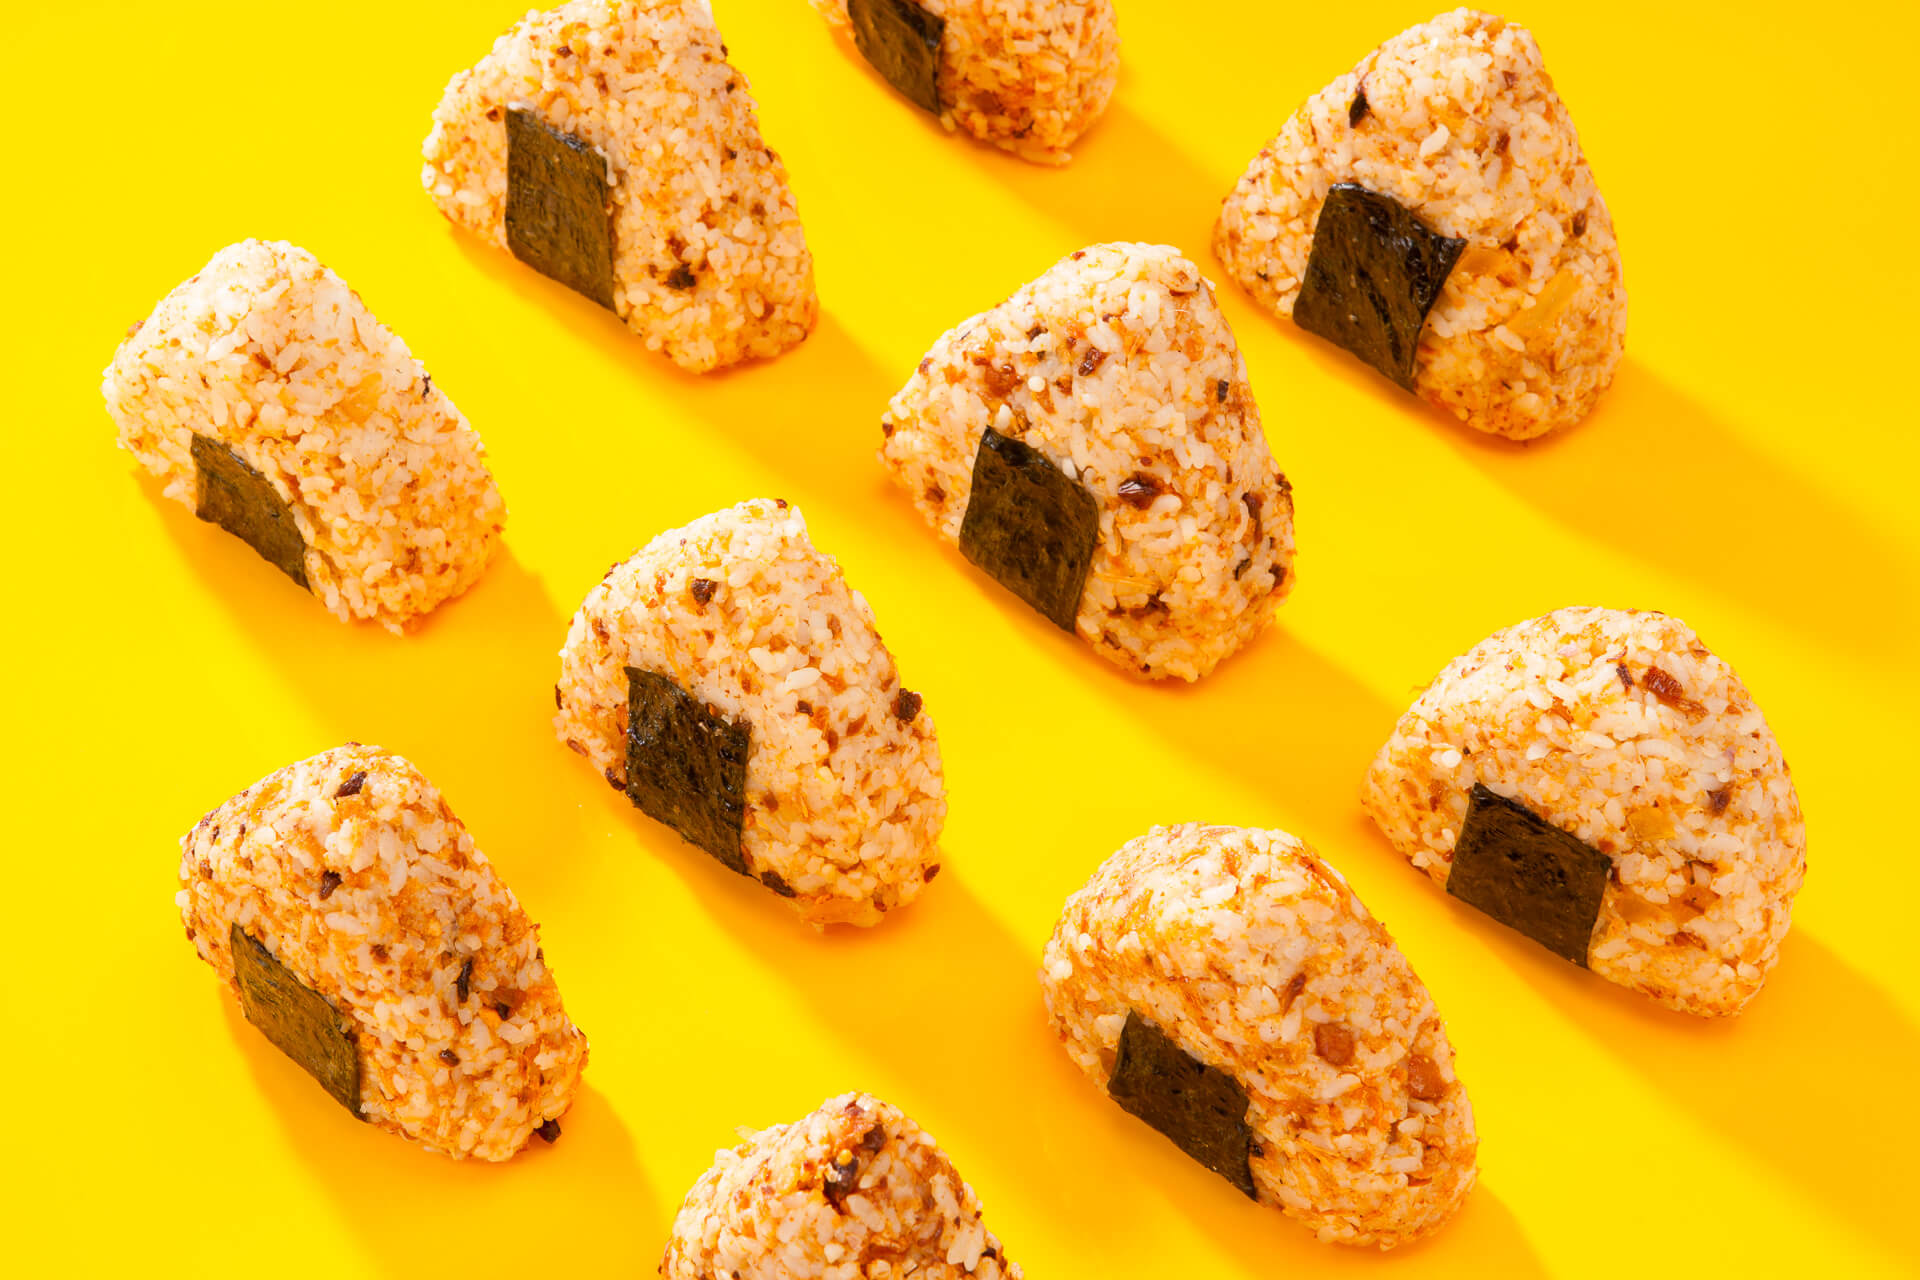 Put Amzap in your homemade onigiri, it's easy and tasty.